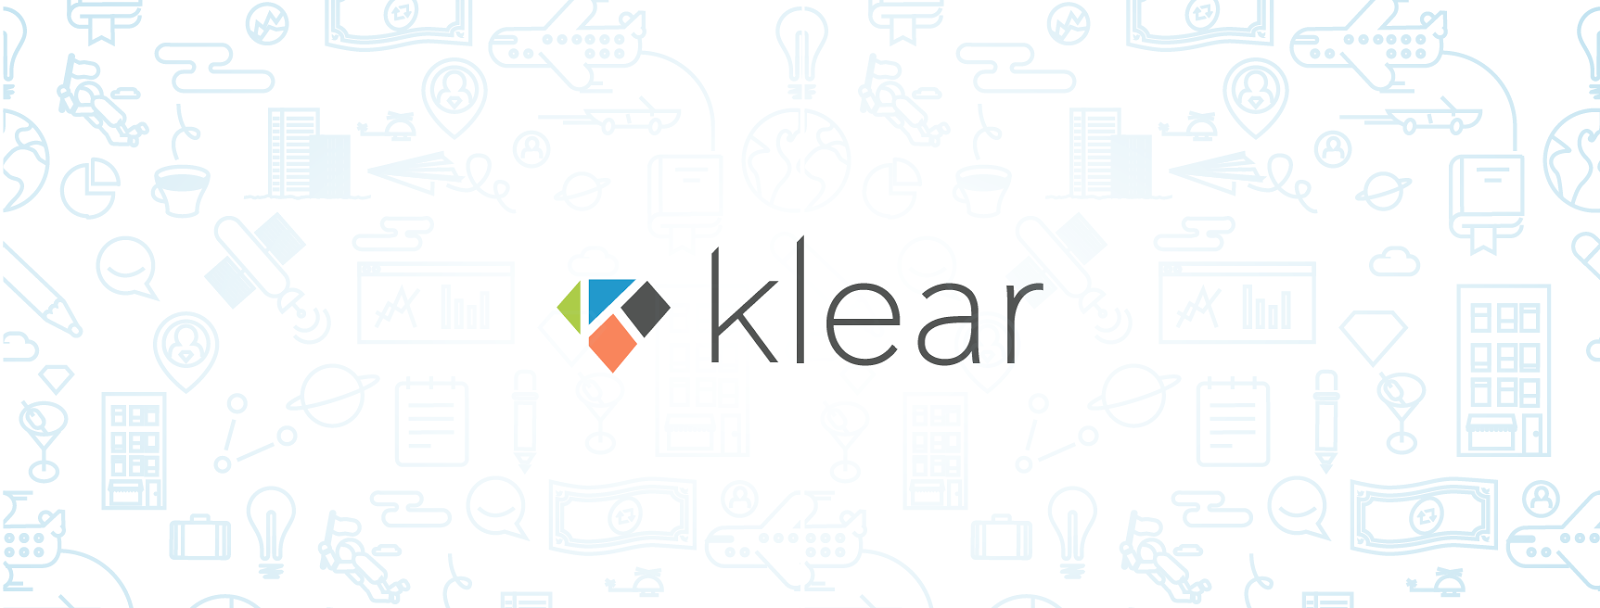 Top 0.5% Internationally by Klear.com